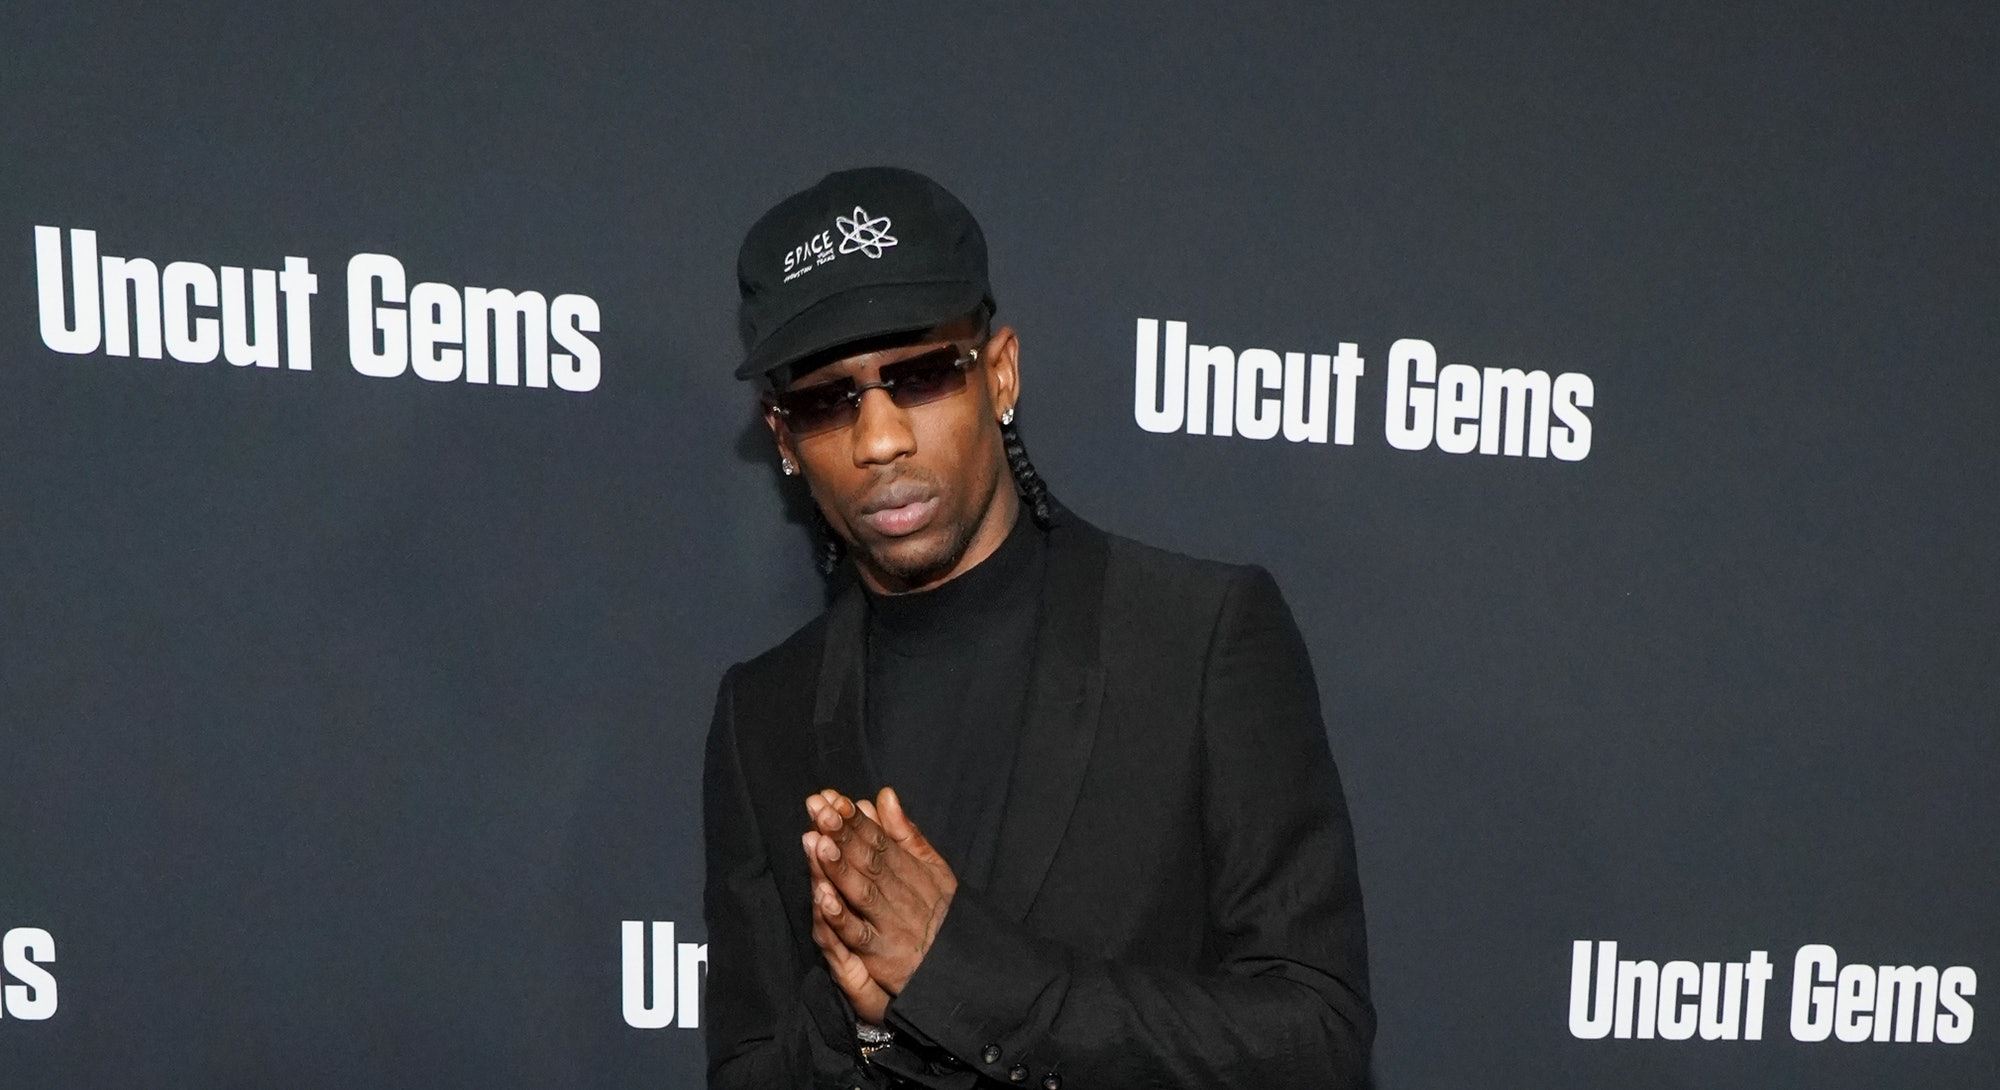 """HOLLYWOOD, CALIFORNIA - DECEMBER 11: Travis Scott attends the premiere of A24's """"Uncut Gems"""" at The ..."""